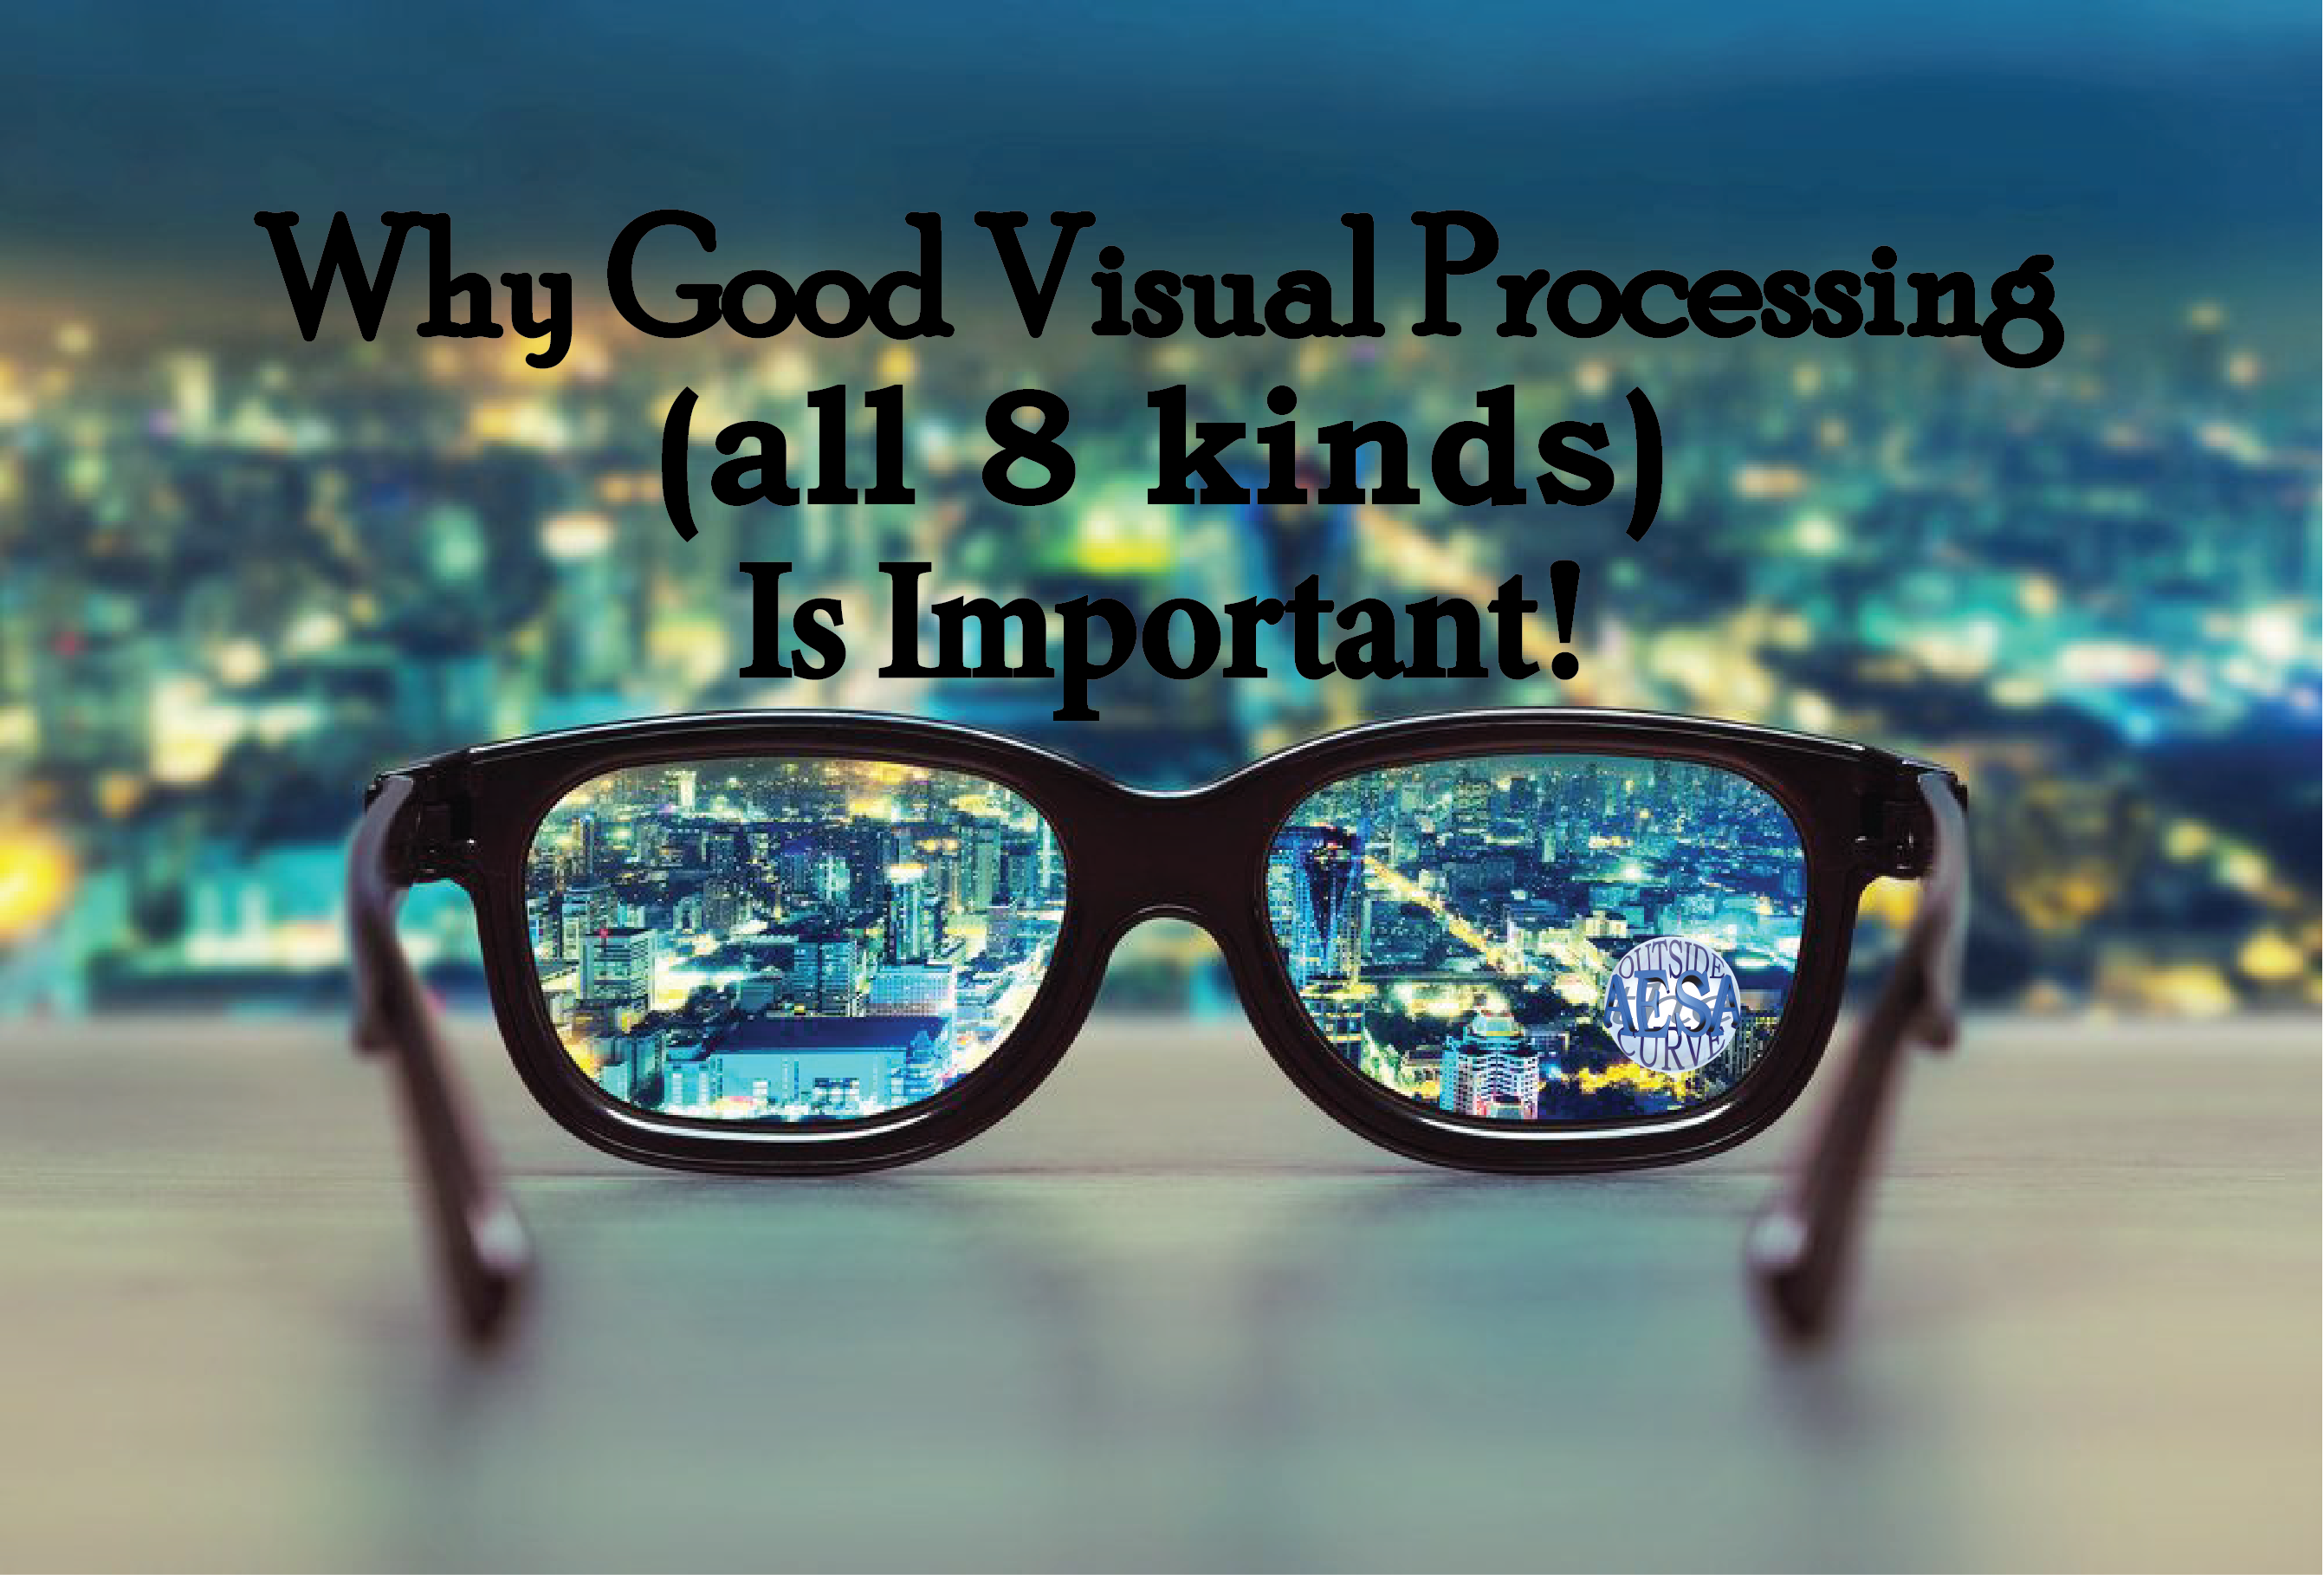 Why Visual Process, All 8 kinds, are important